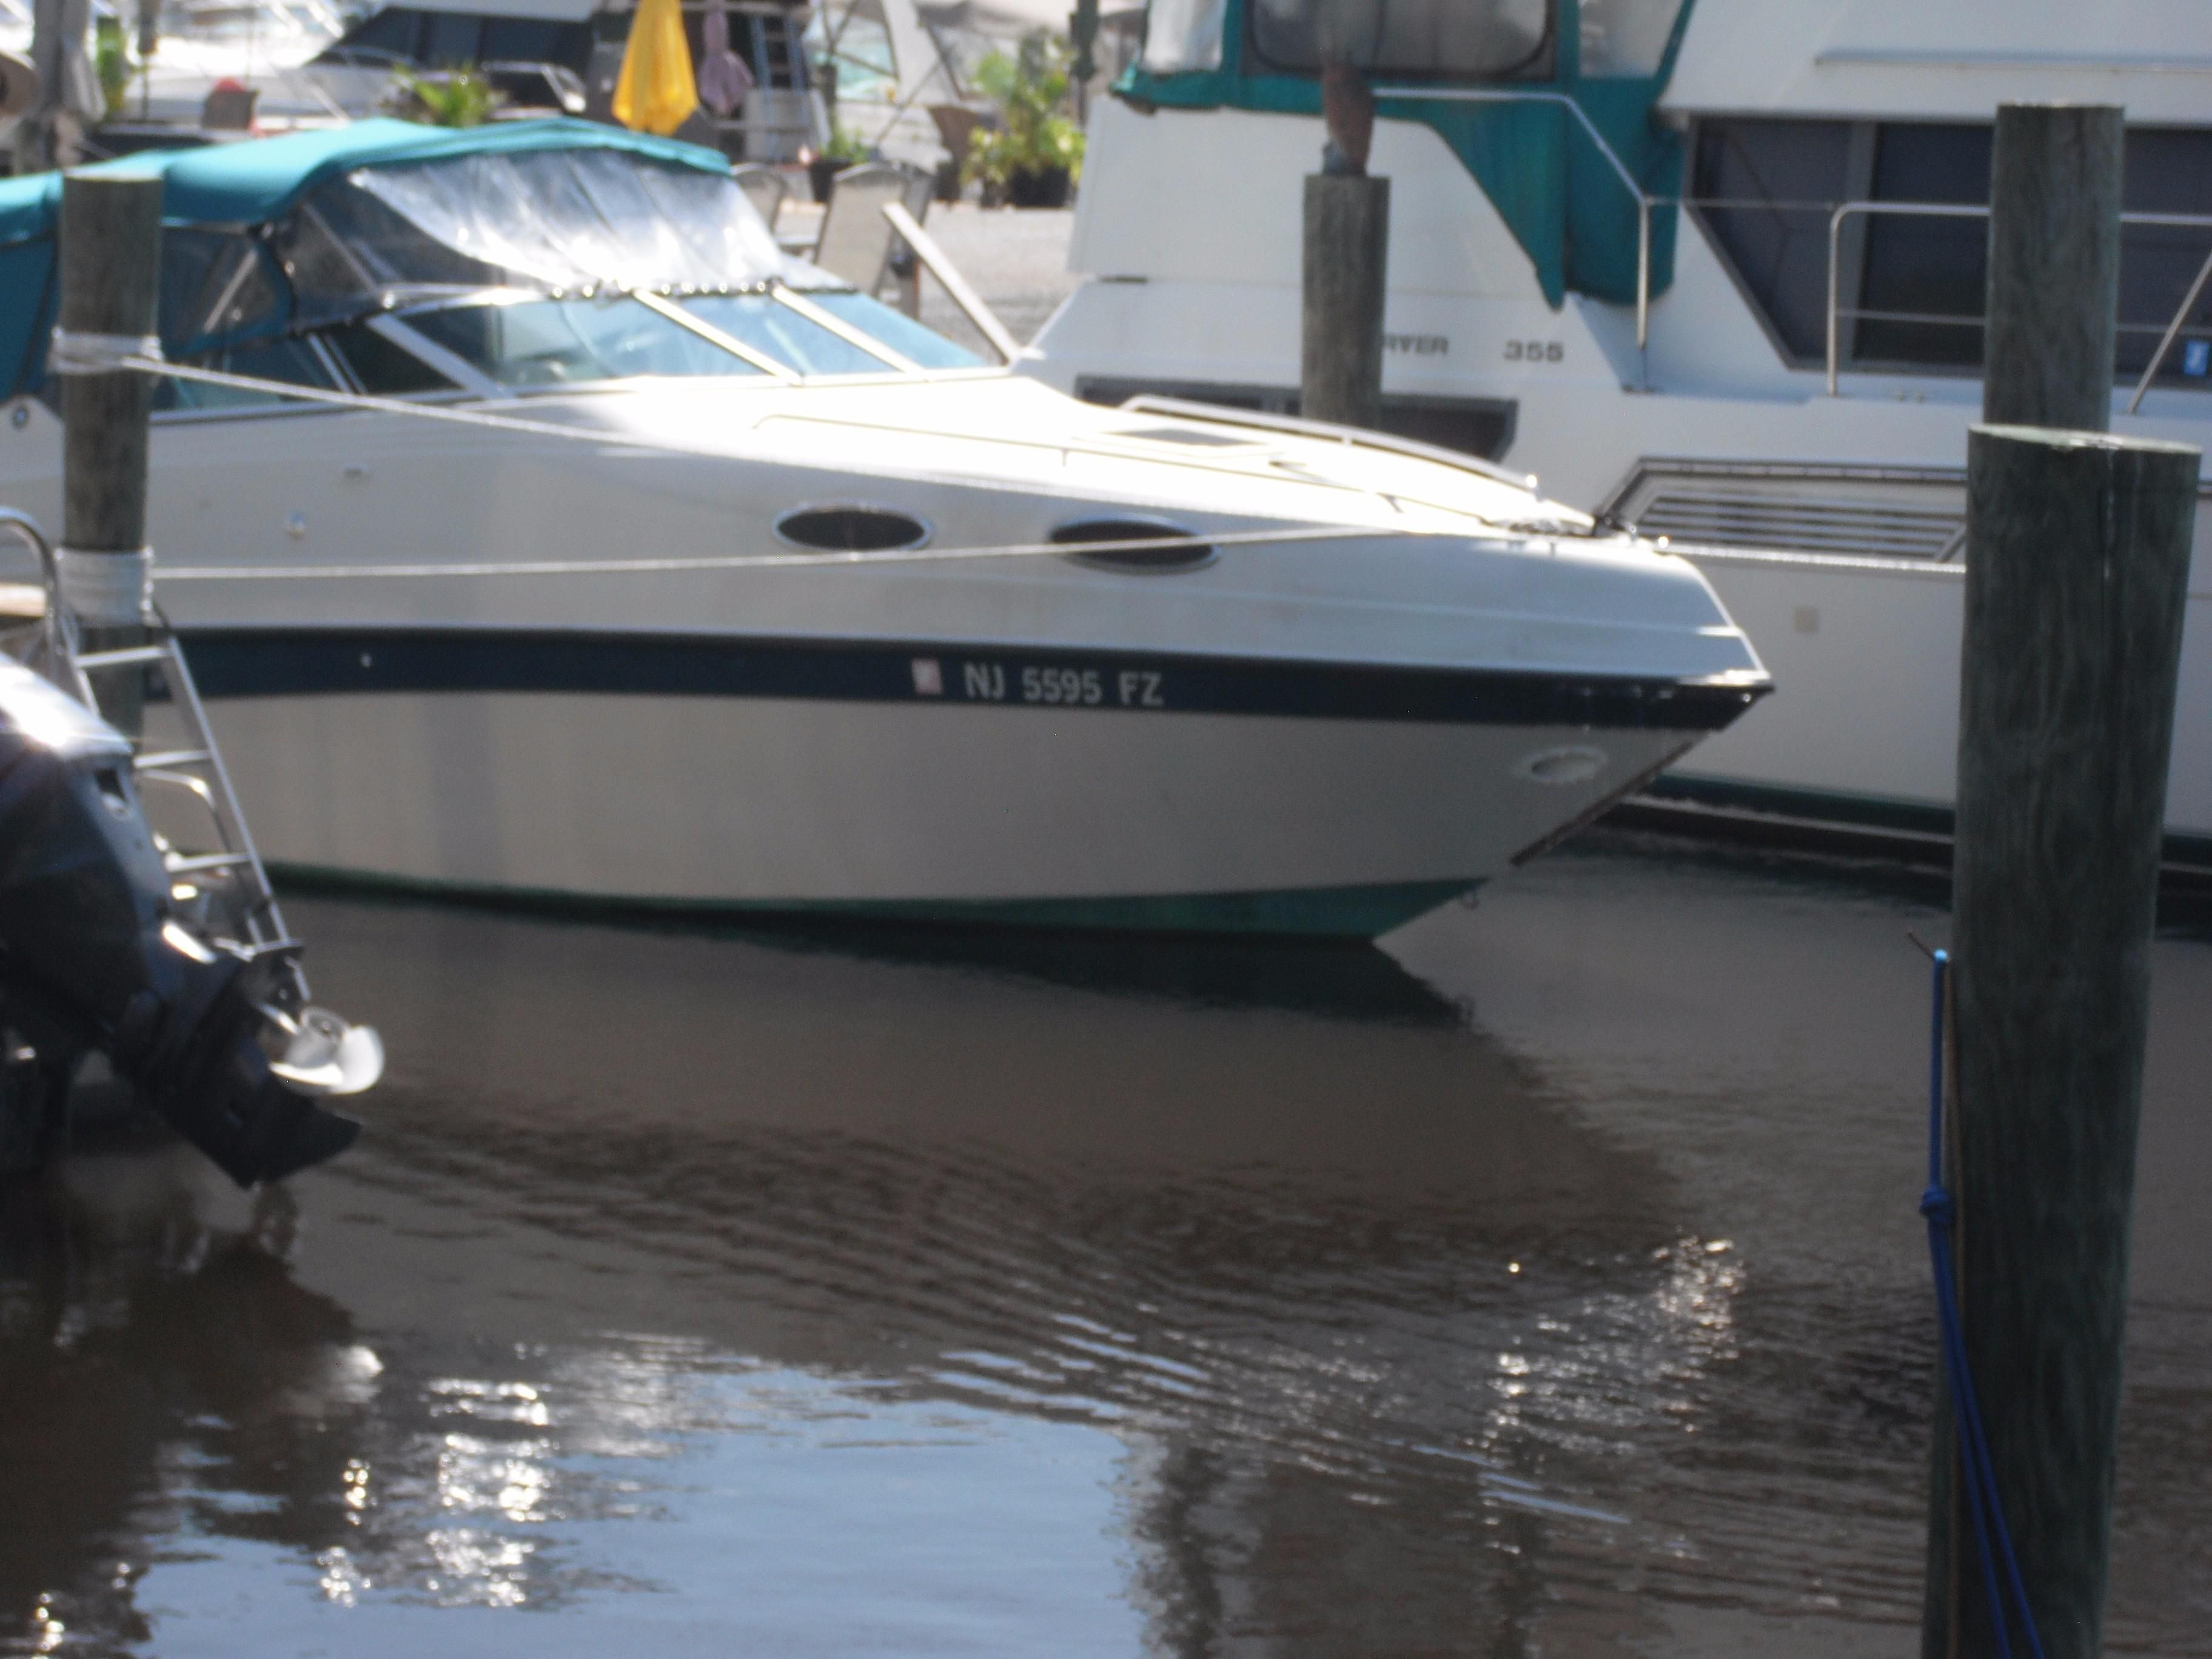 1995 Genesis 2502 Cuddy Cabin Power Boat For Sale Www